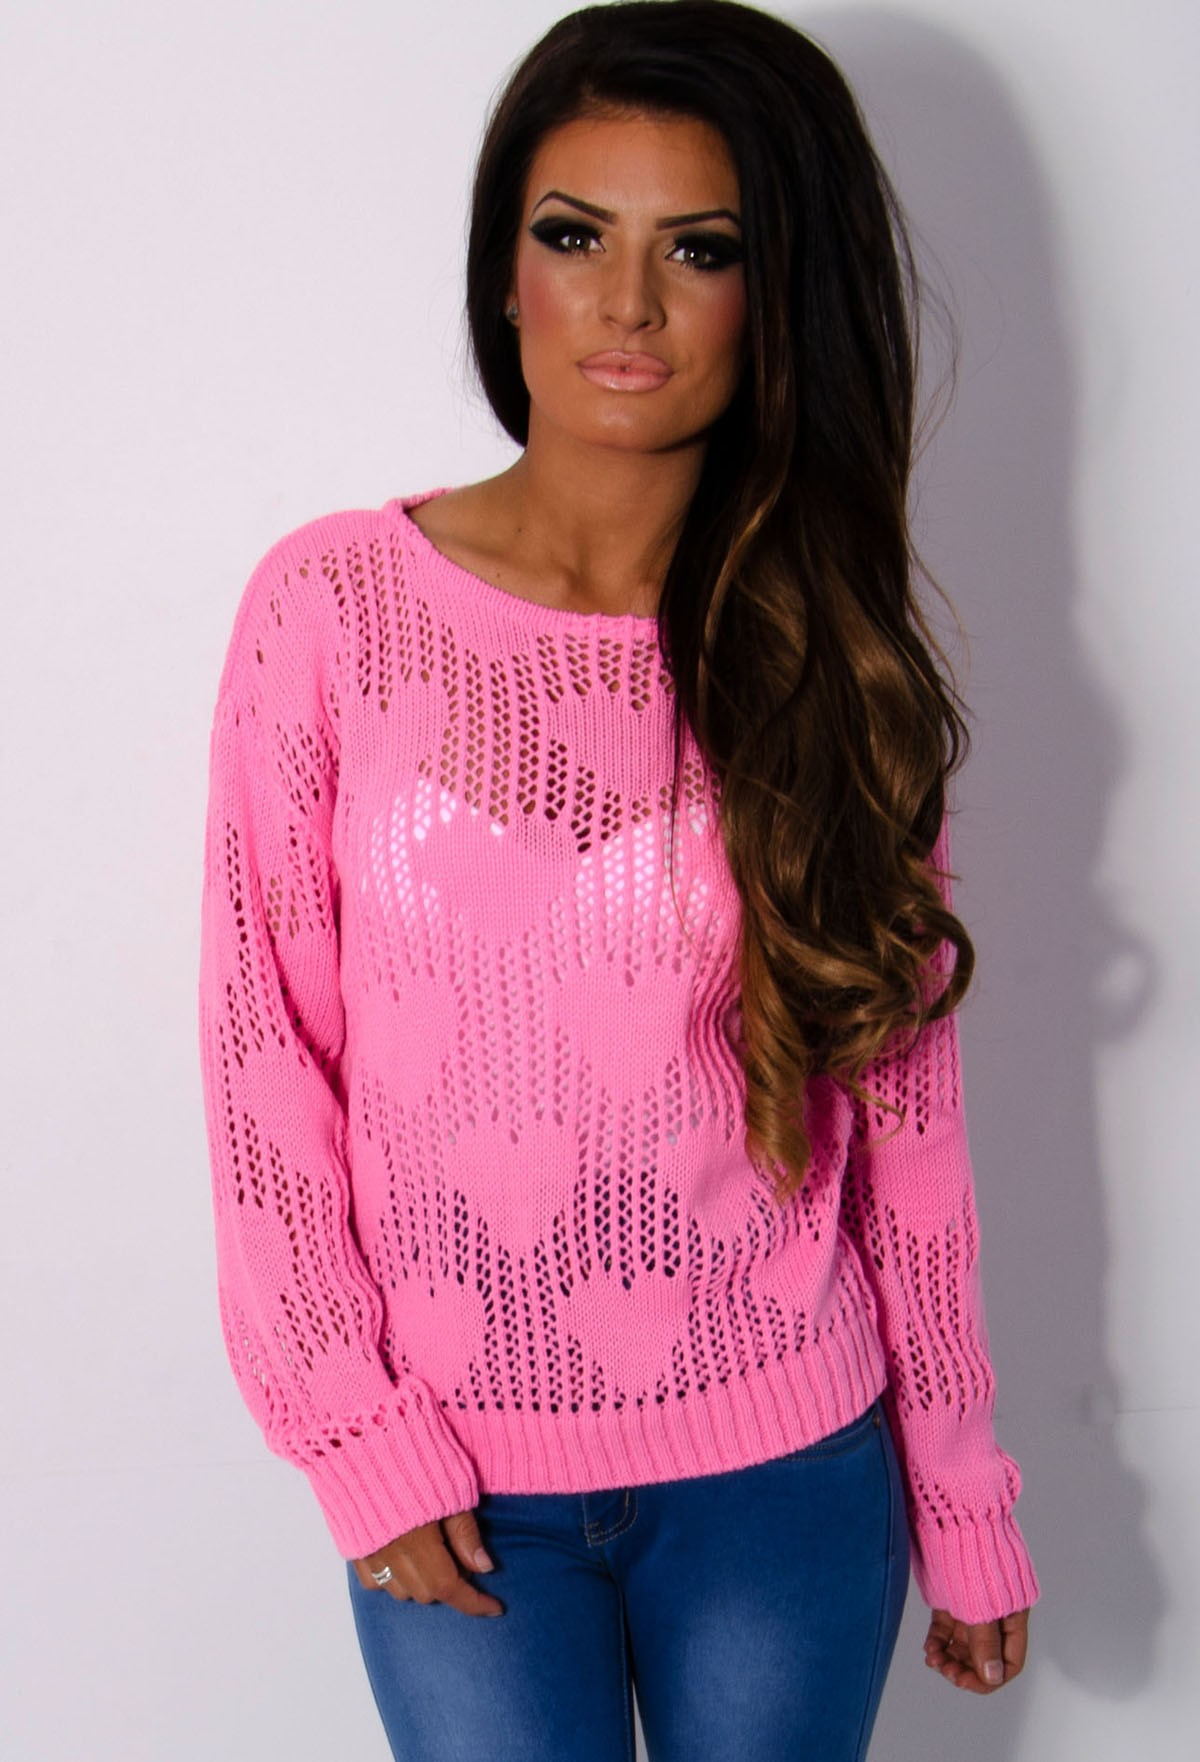 Polly Bright Pink Heart Knit Mesh Jumper | Pink Boutique